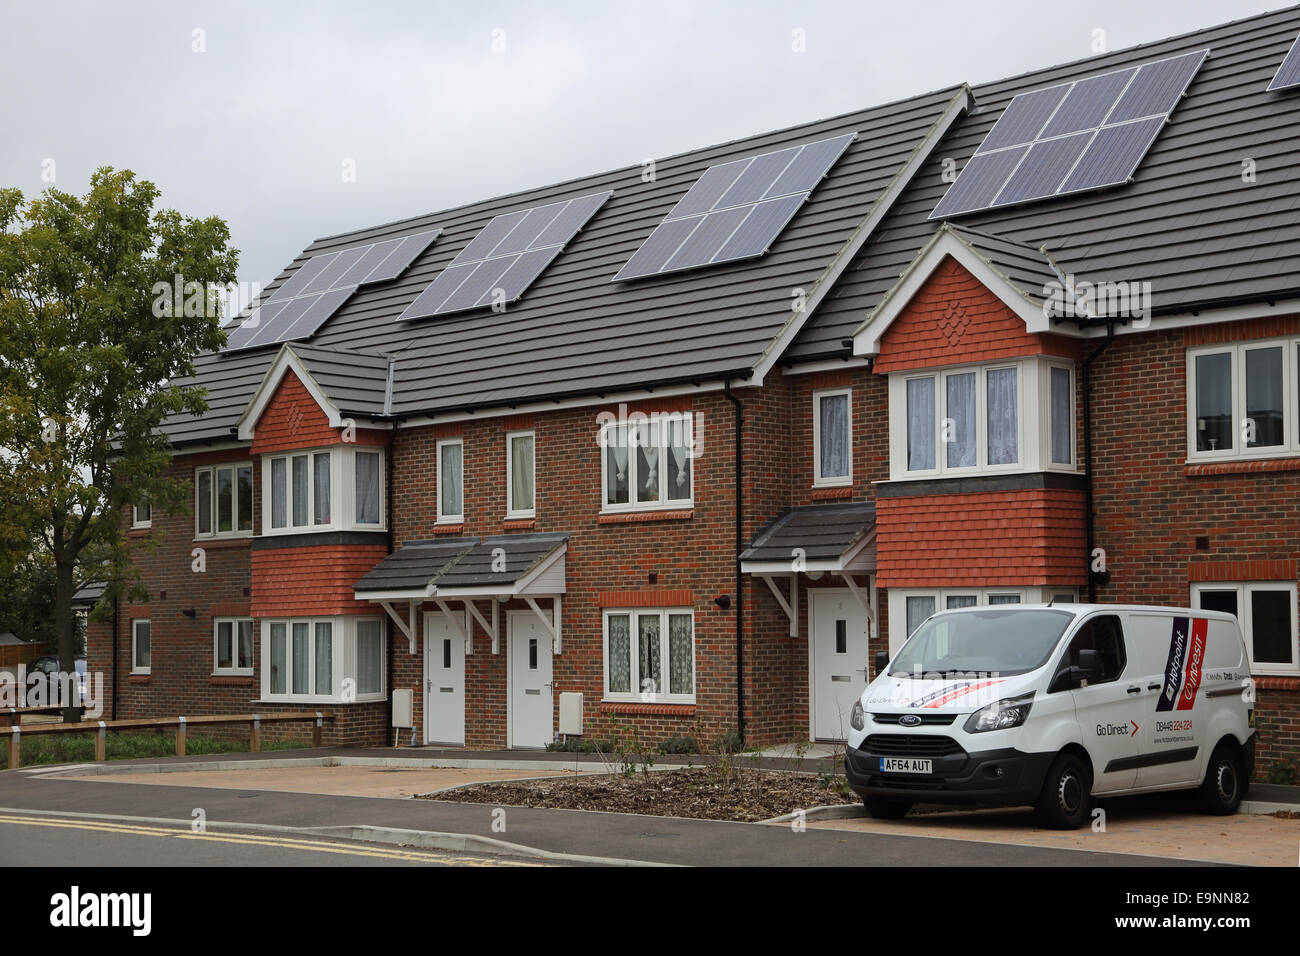 A new housing estate featuring solar PV panels installed on the pitched roof - Stock Image